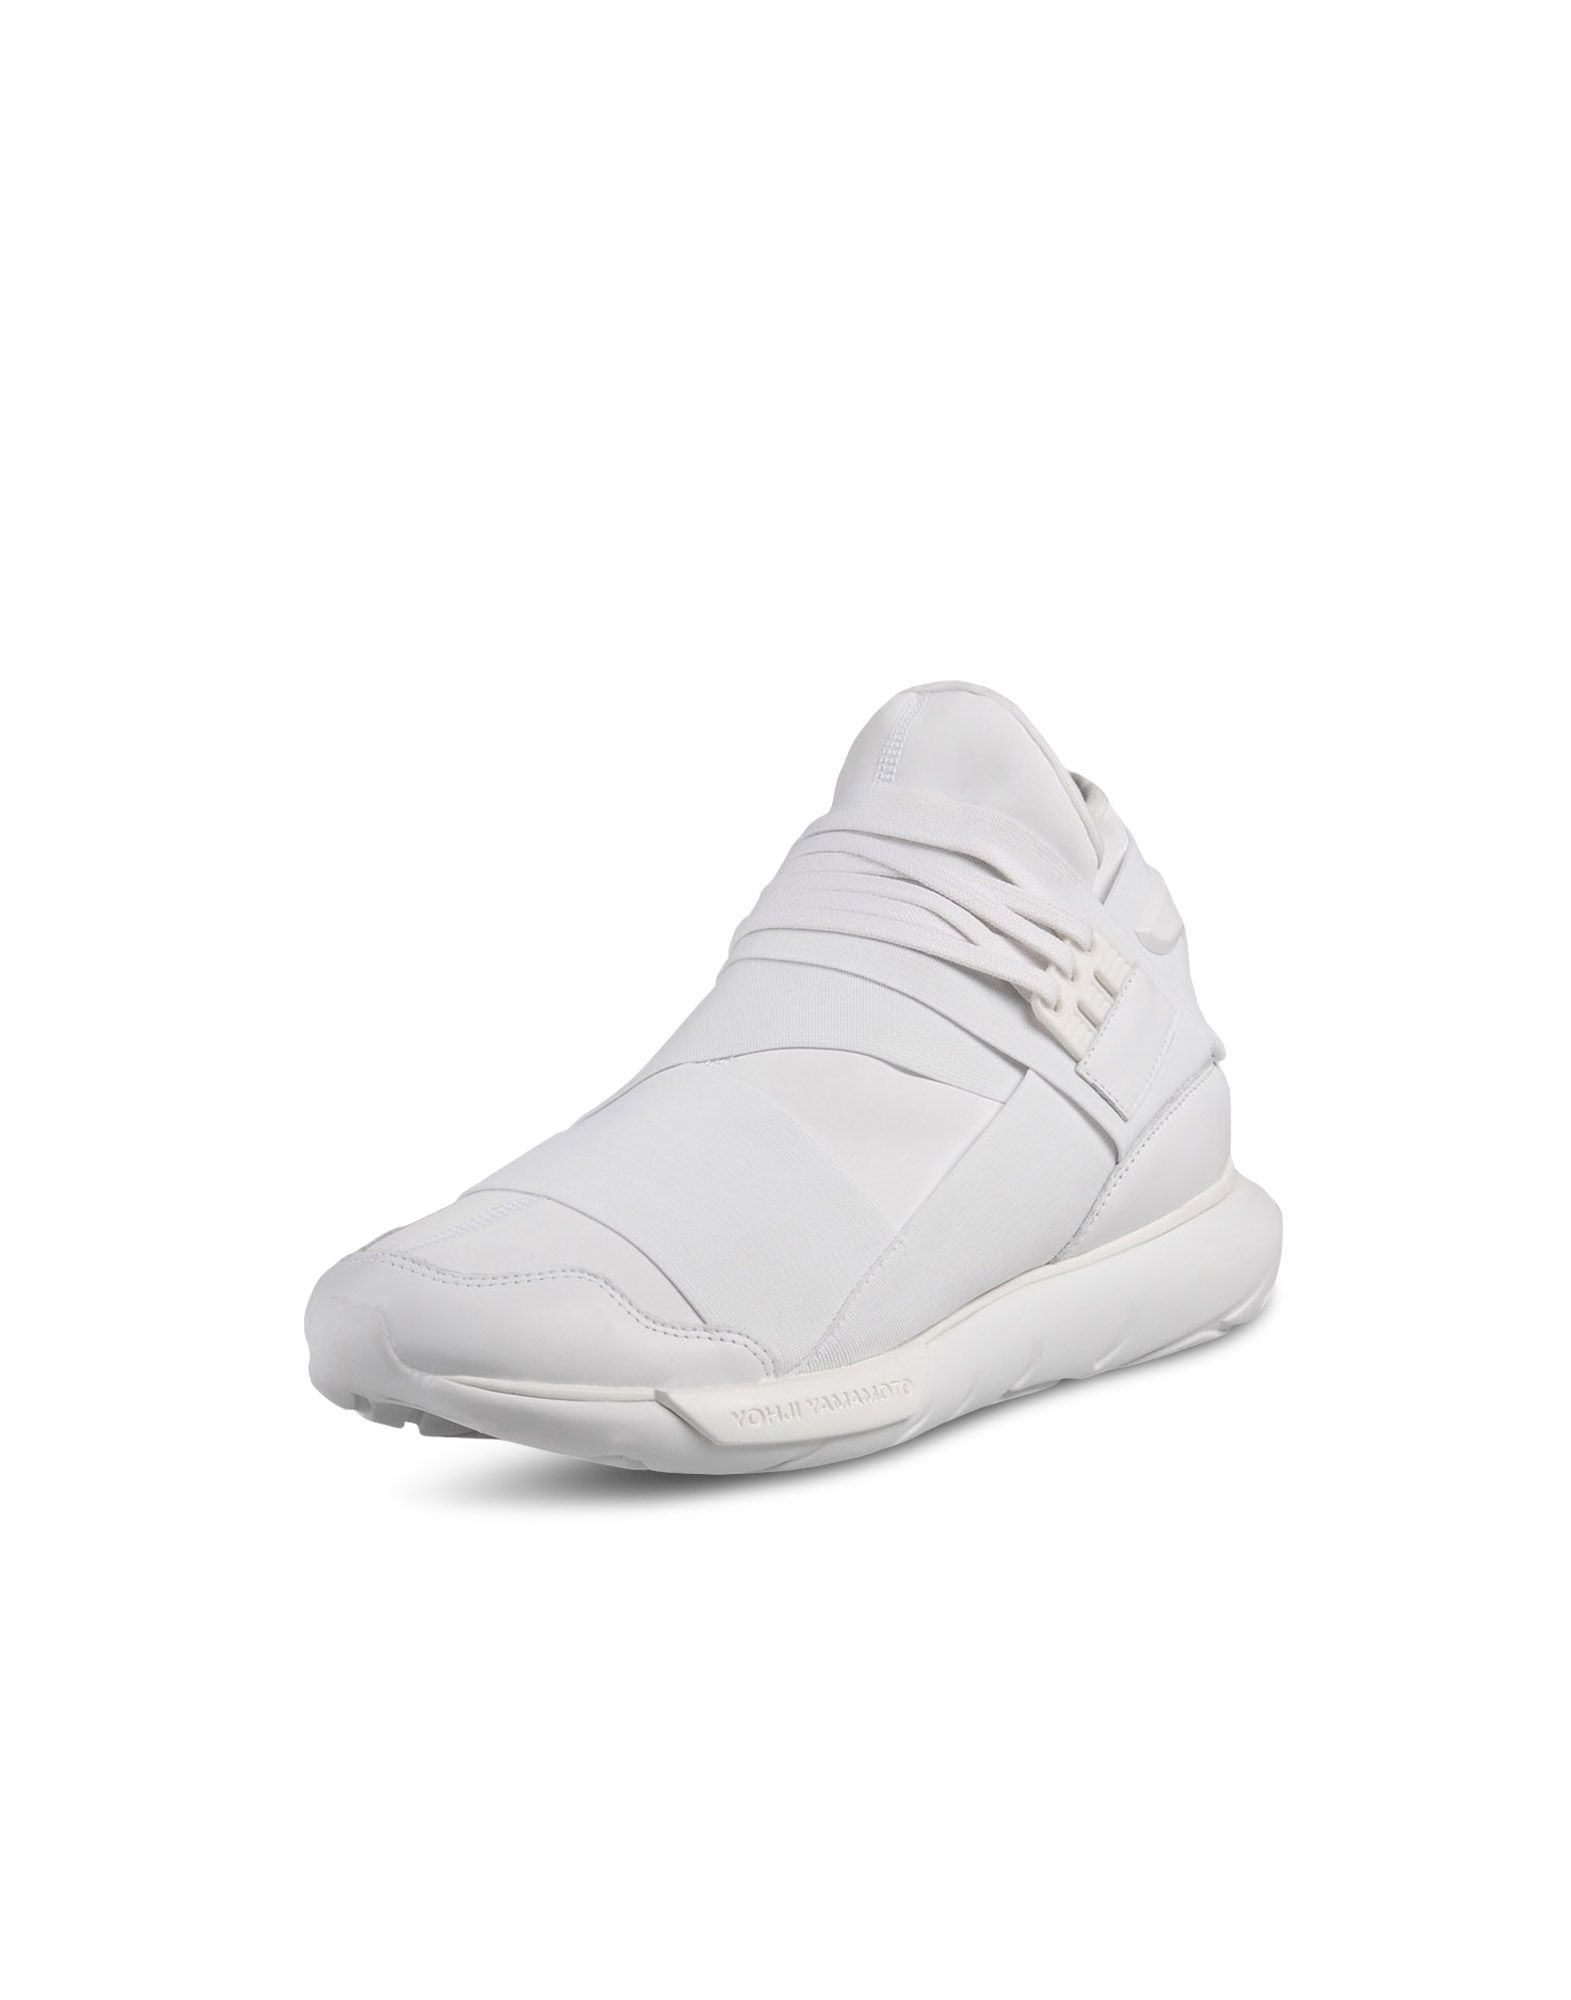 Y-3 Y-3 QASA HIGH Sneakers E r